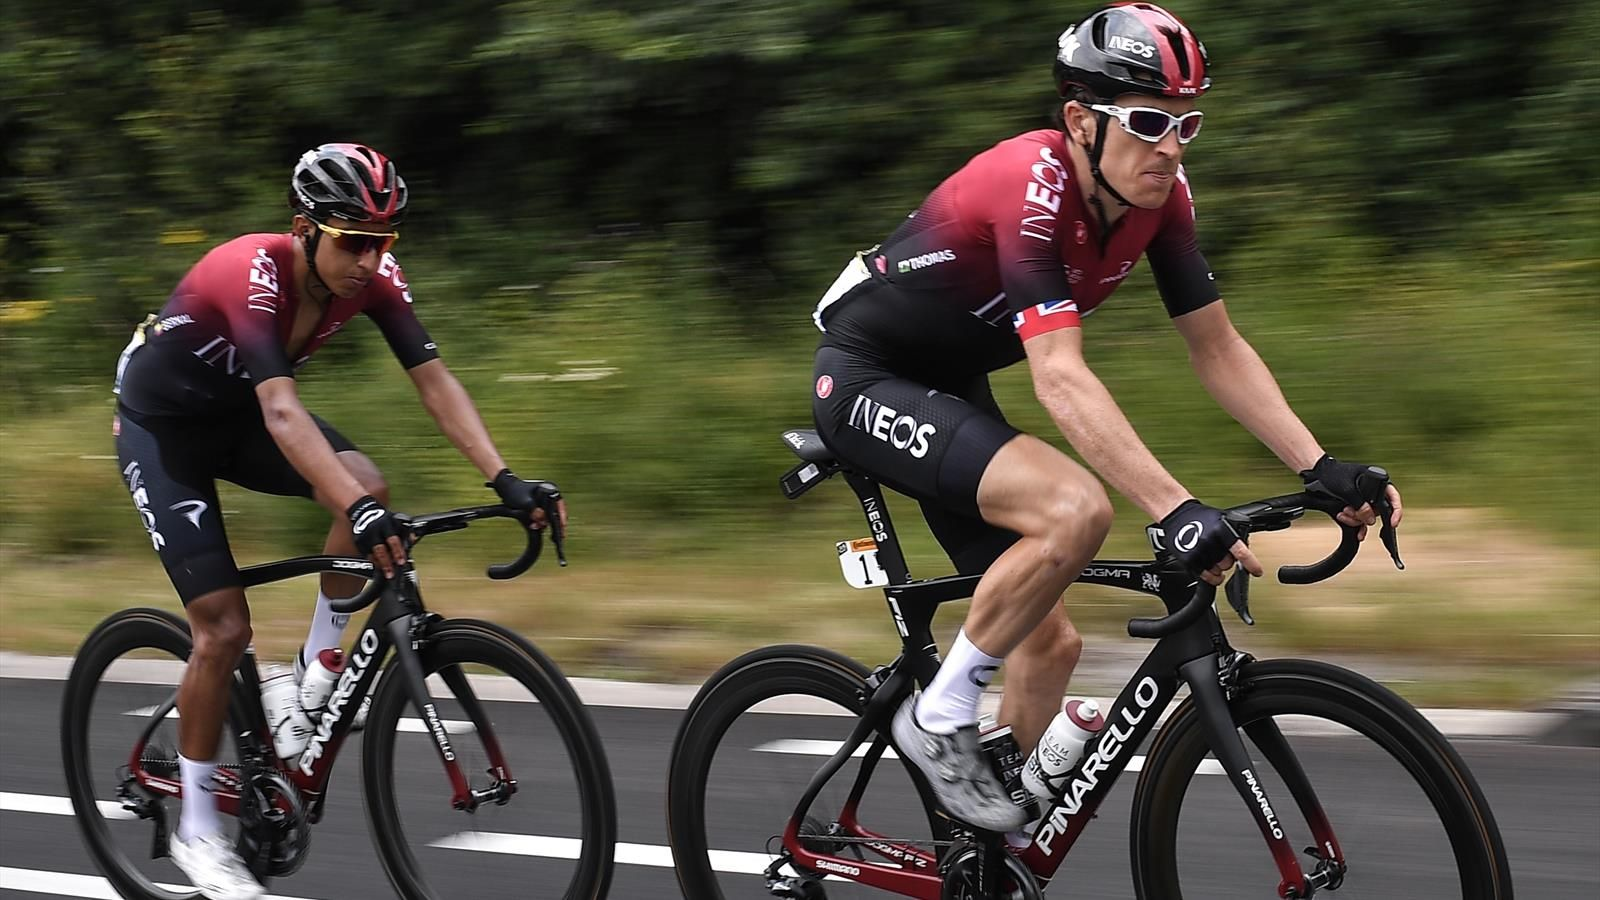 Dylan Teuns Takes 2019 Tour de France Stage 6 Victory as Julian Alaphilippe Loses Yellow Jersey 8